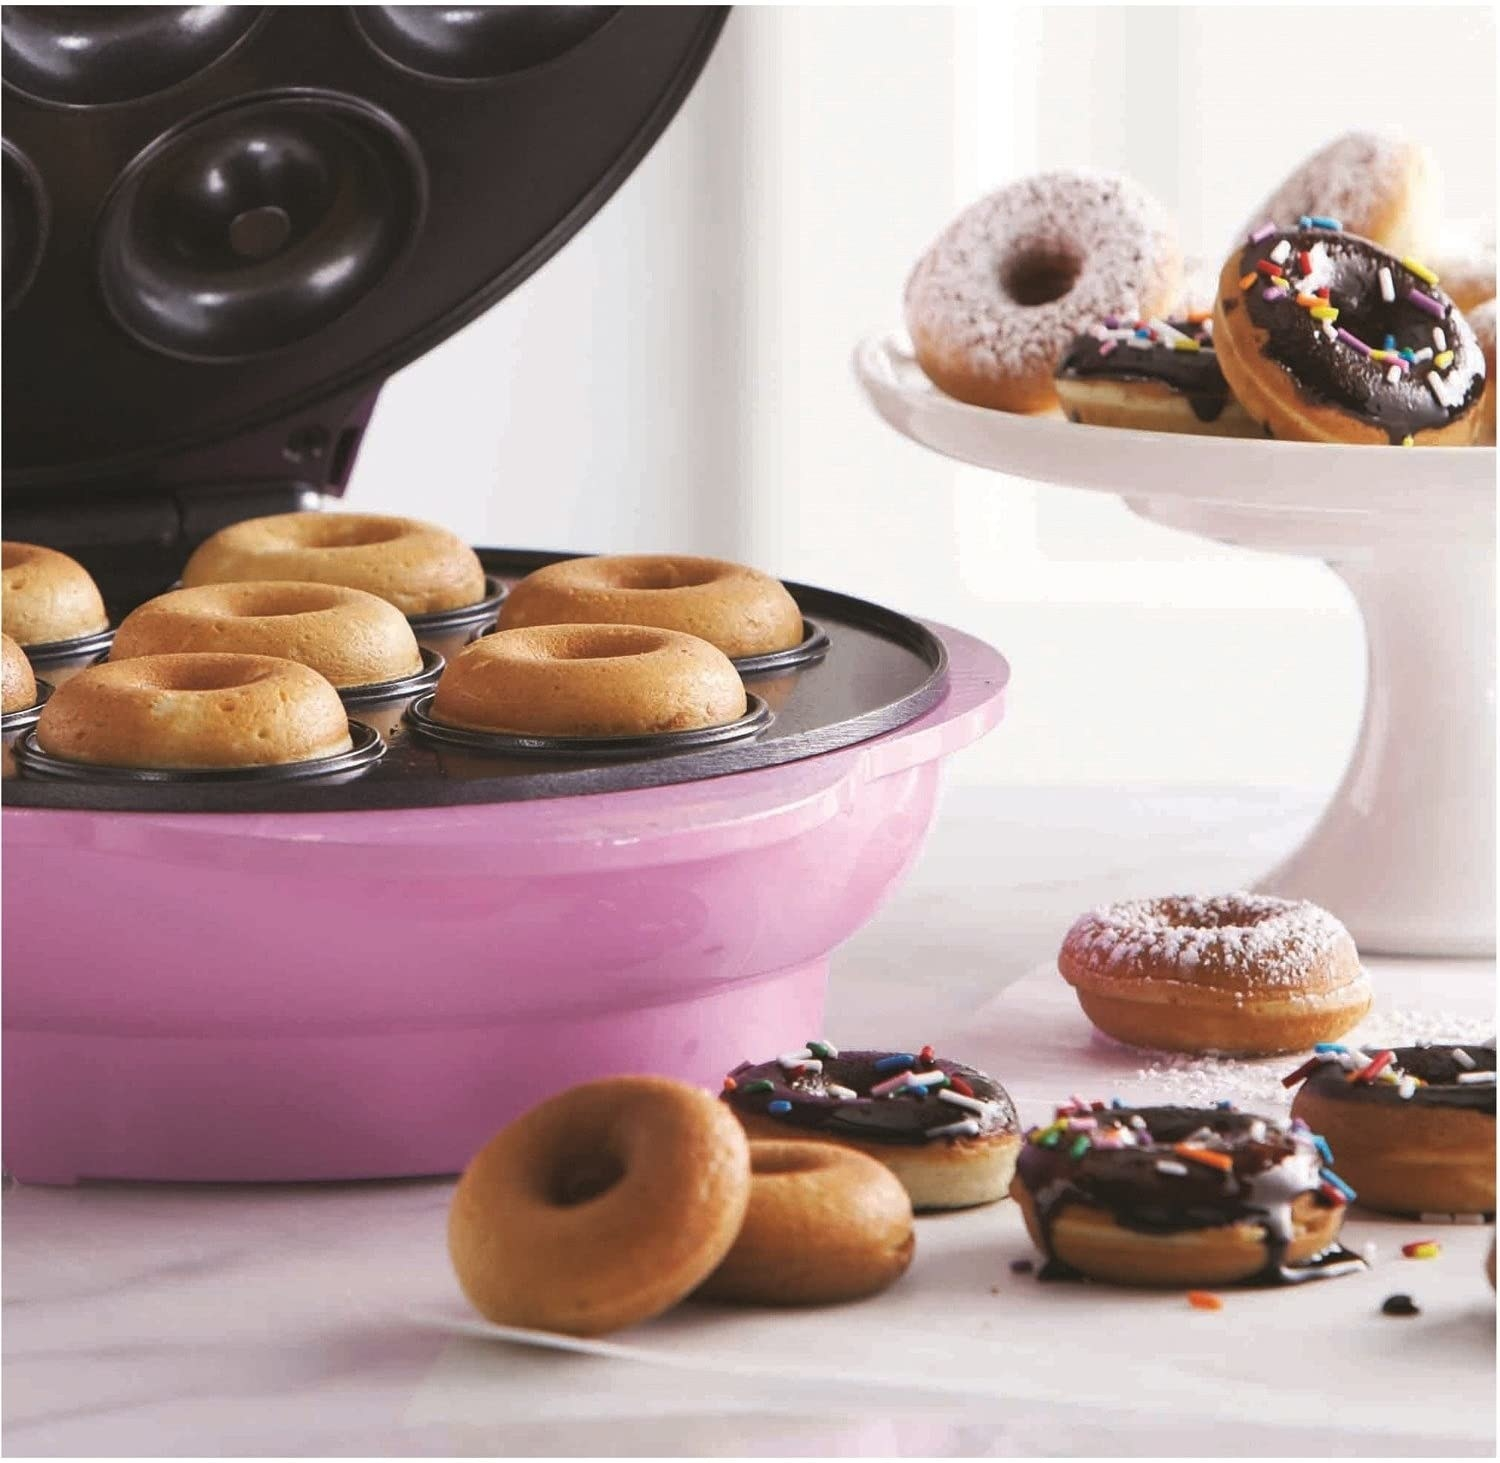 A close up of the inside of the donut maker where fresh mini donuts are visible